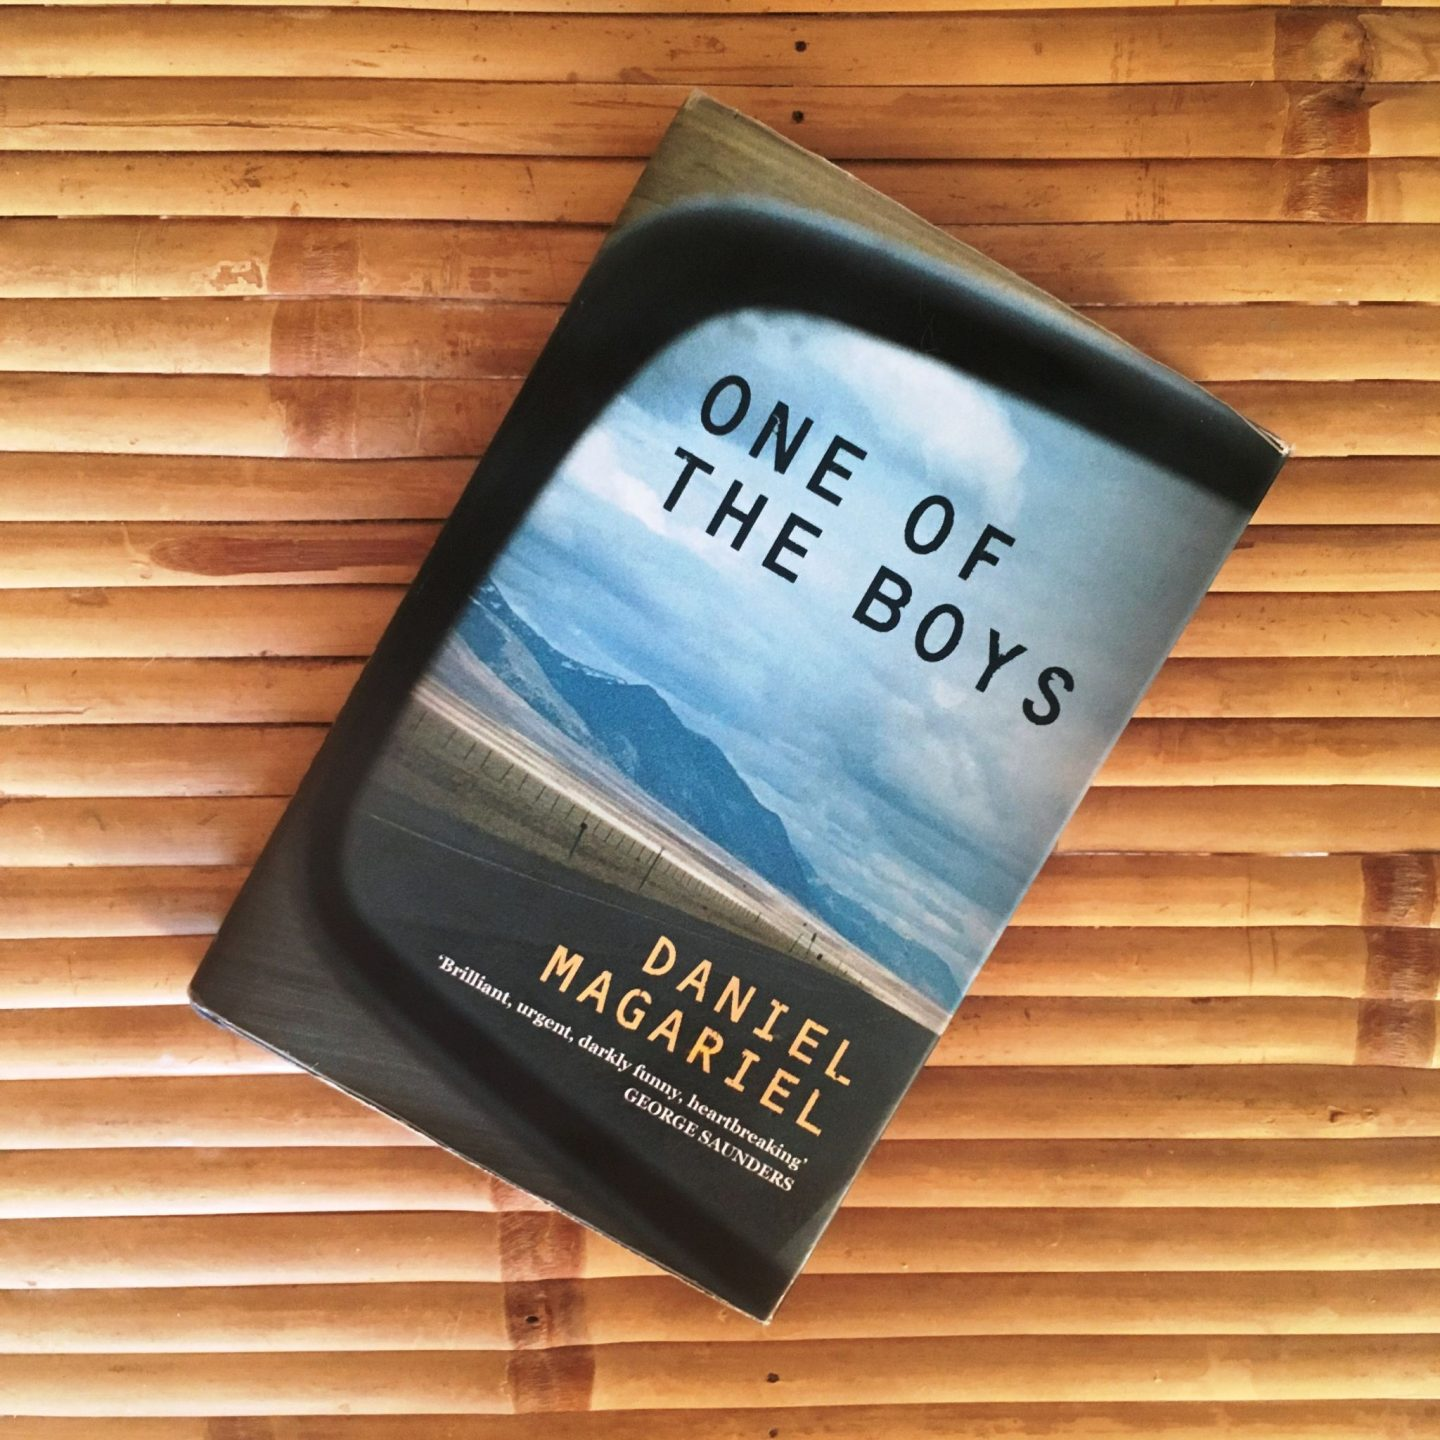 A story of toxic masculinity: One of the Boys